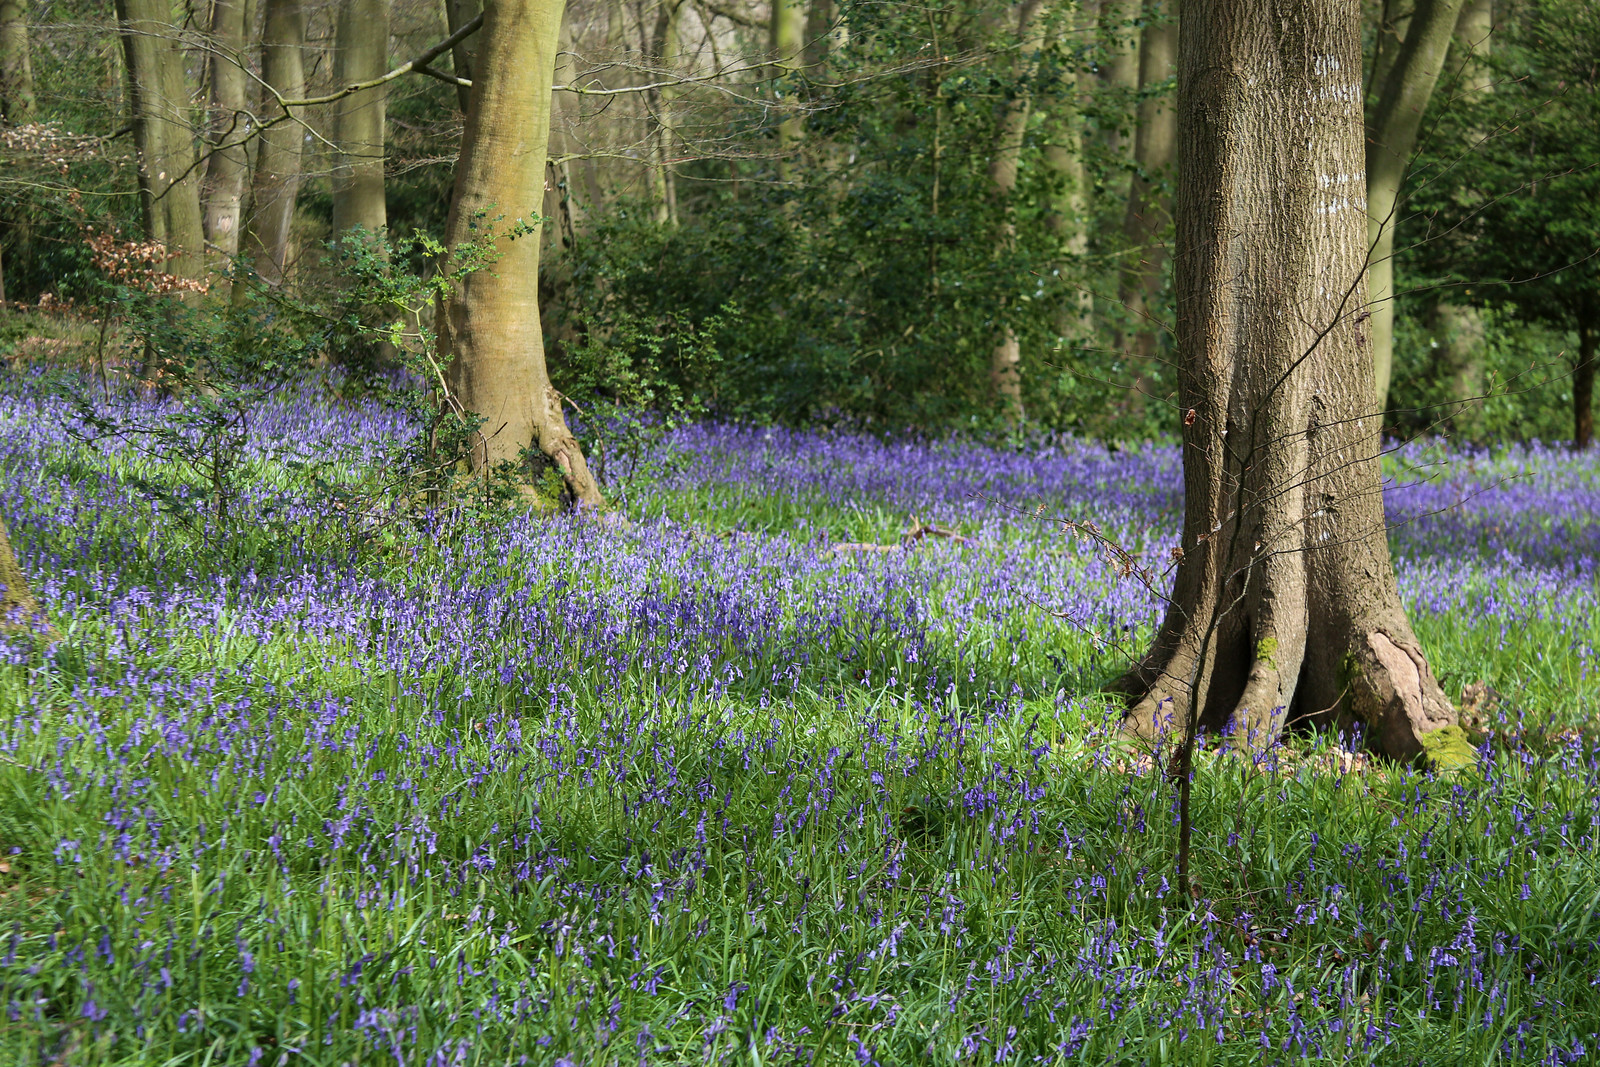 Bluebells in Lambridge Wood